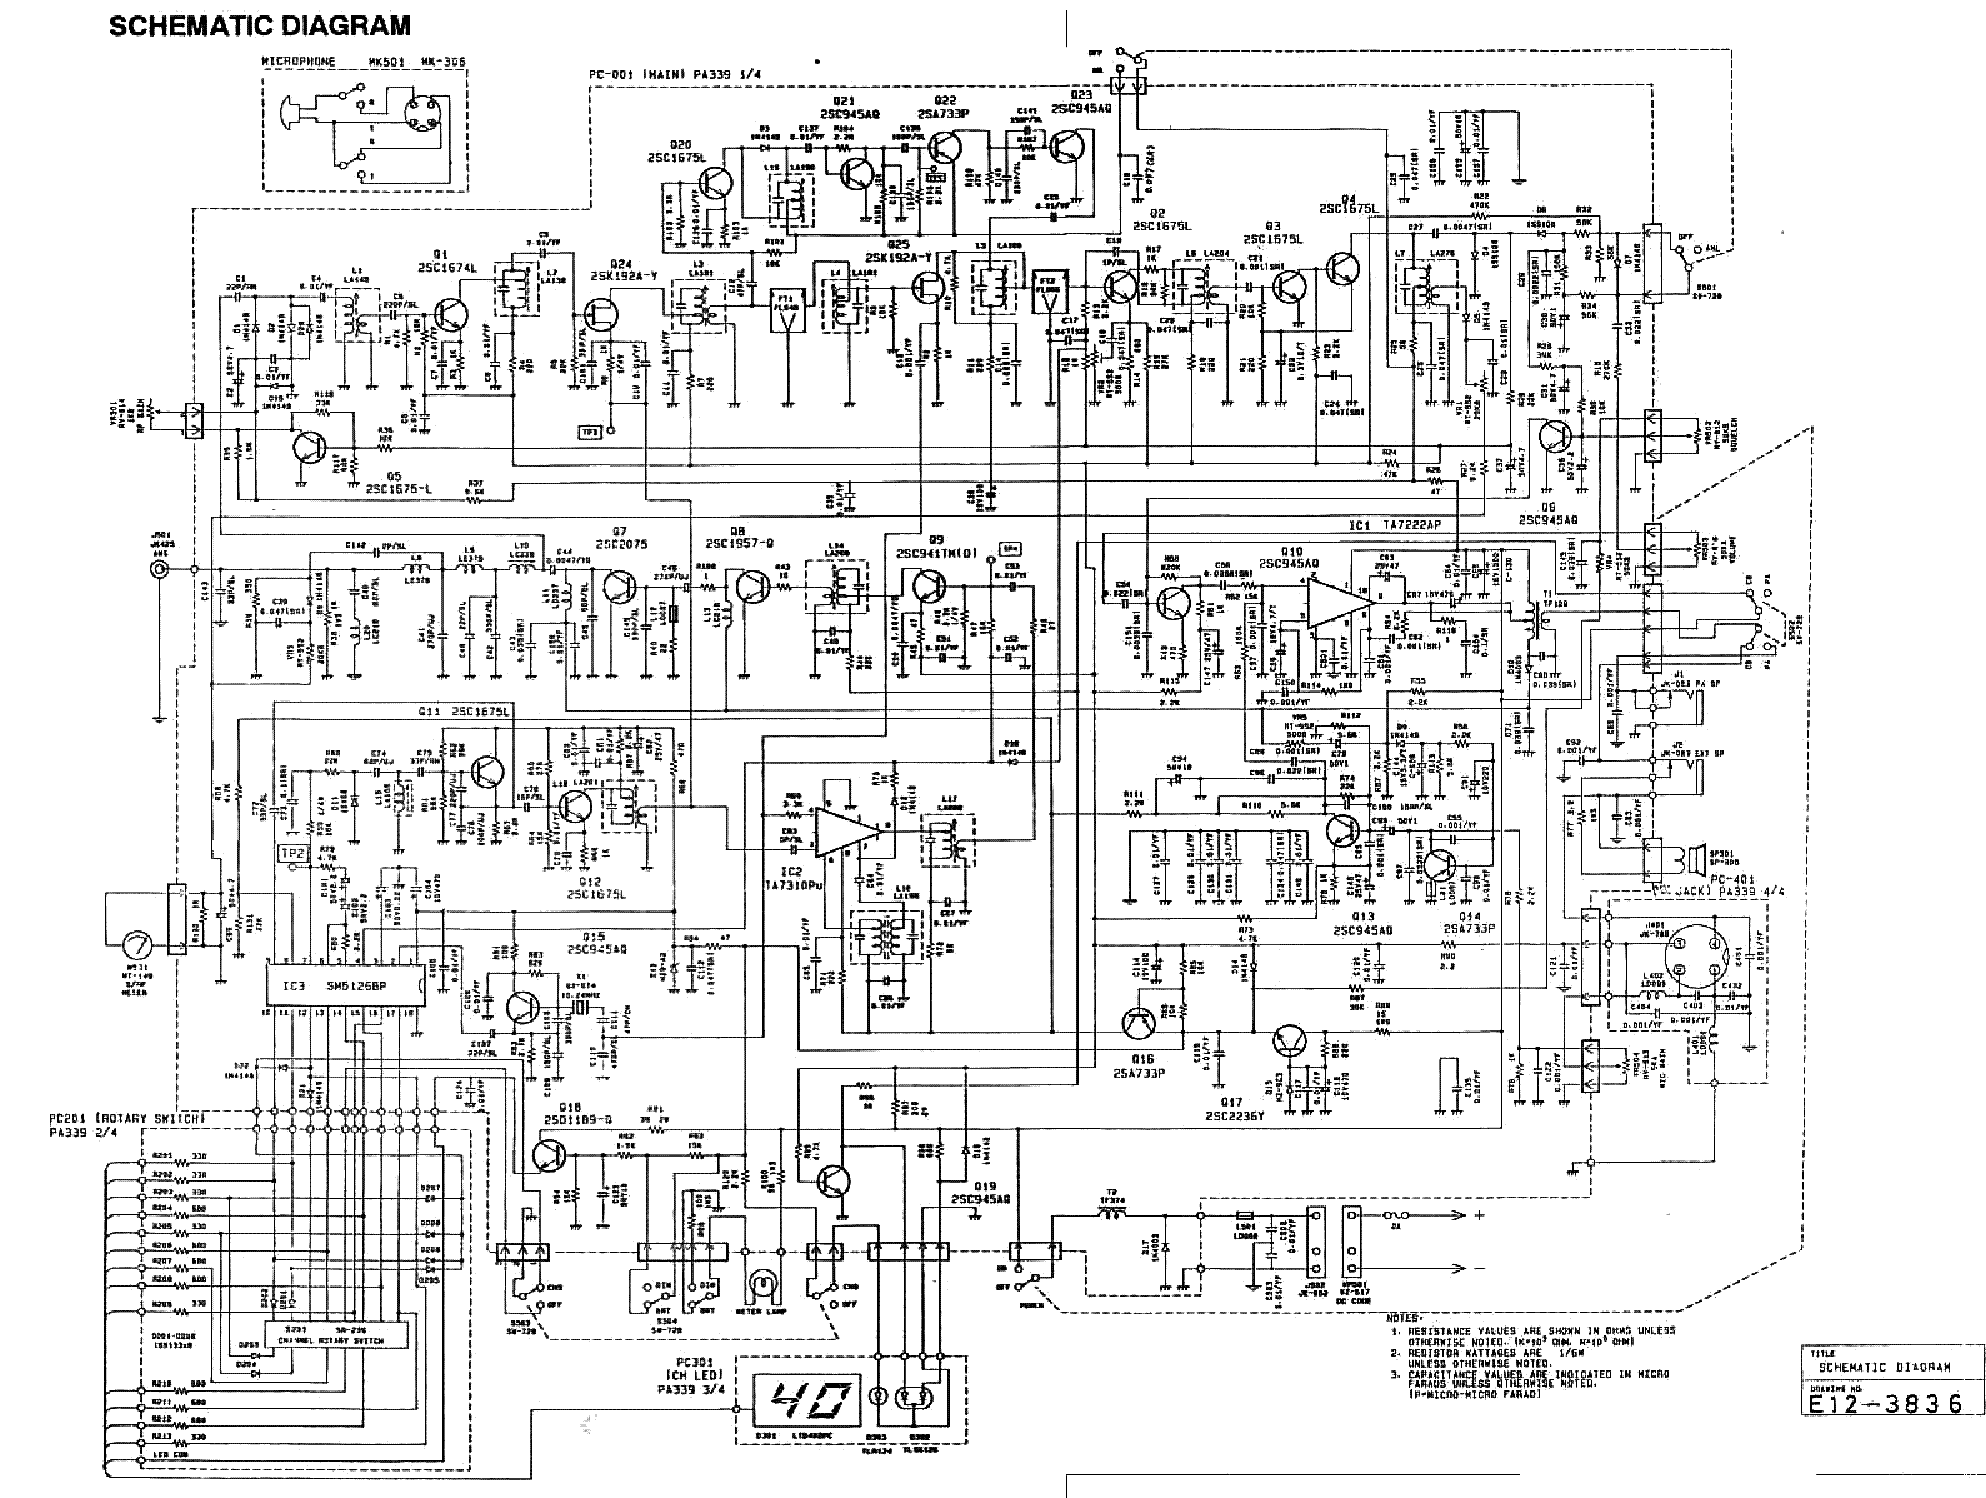 here is the schematic     http://elektrotanya com/previews/45612216/23432455/transceiver/uniden /uniden_pc66 pdf_1 png